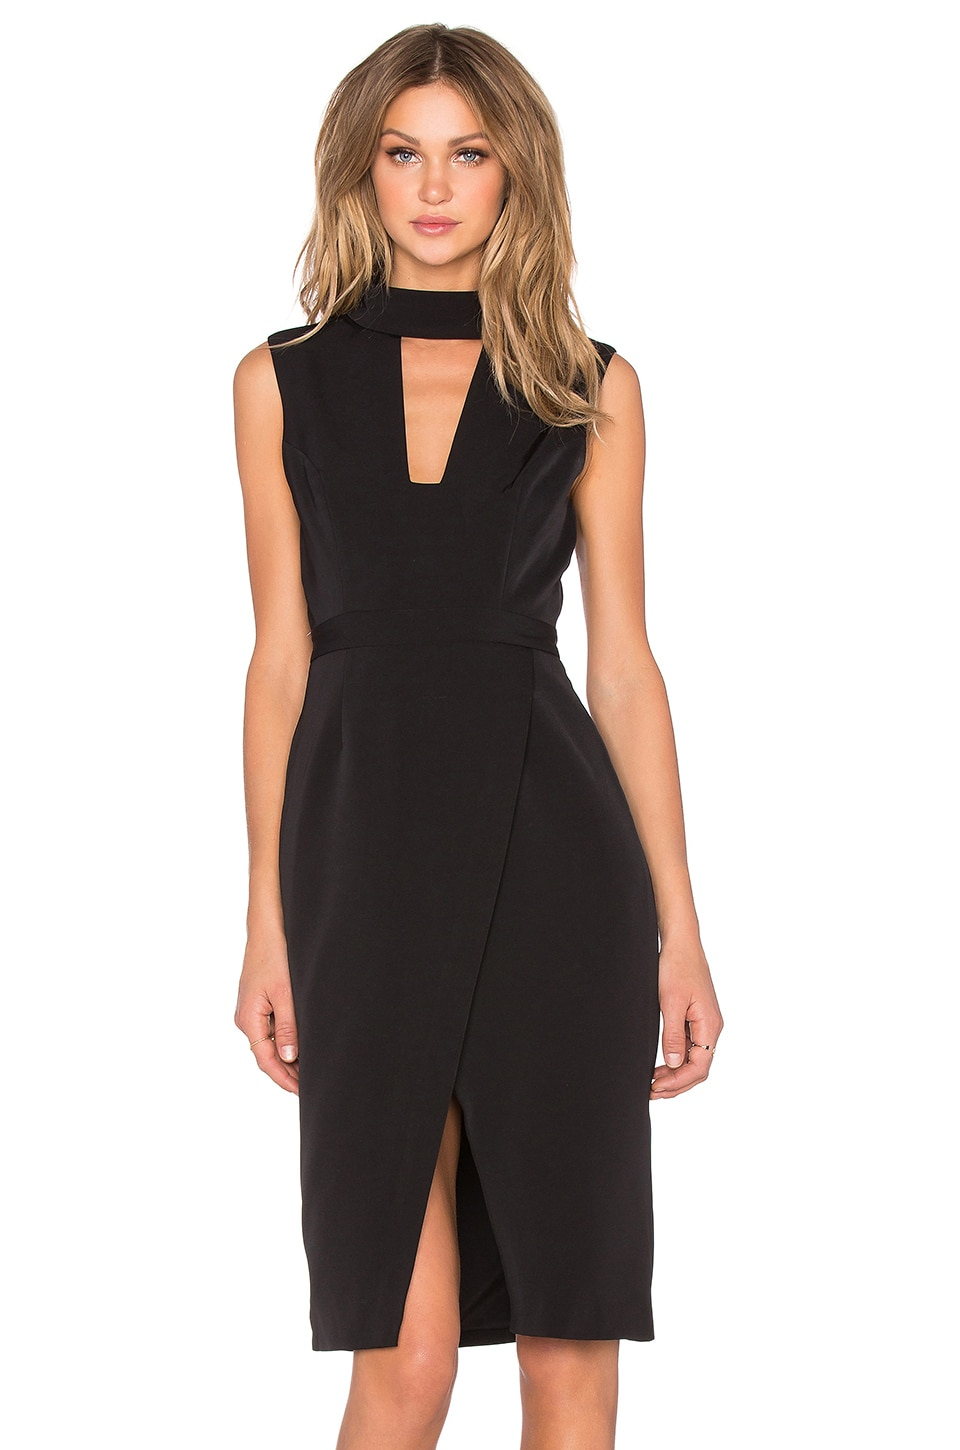 Finders Keepers Divine Eternal Midi Dress in Black